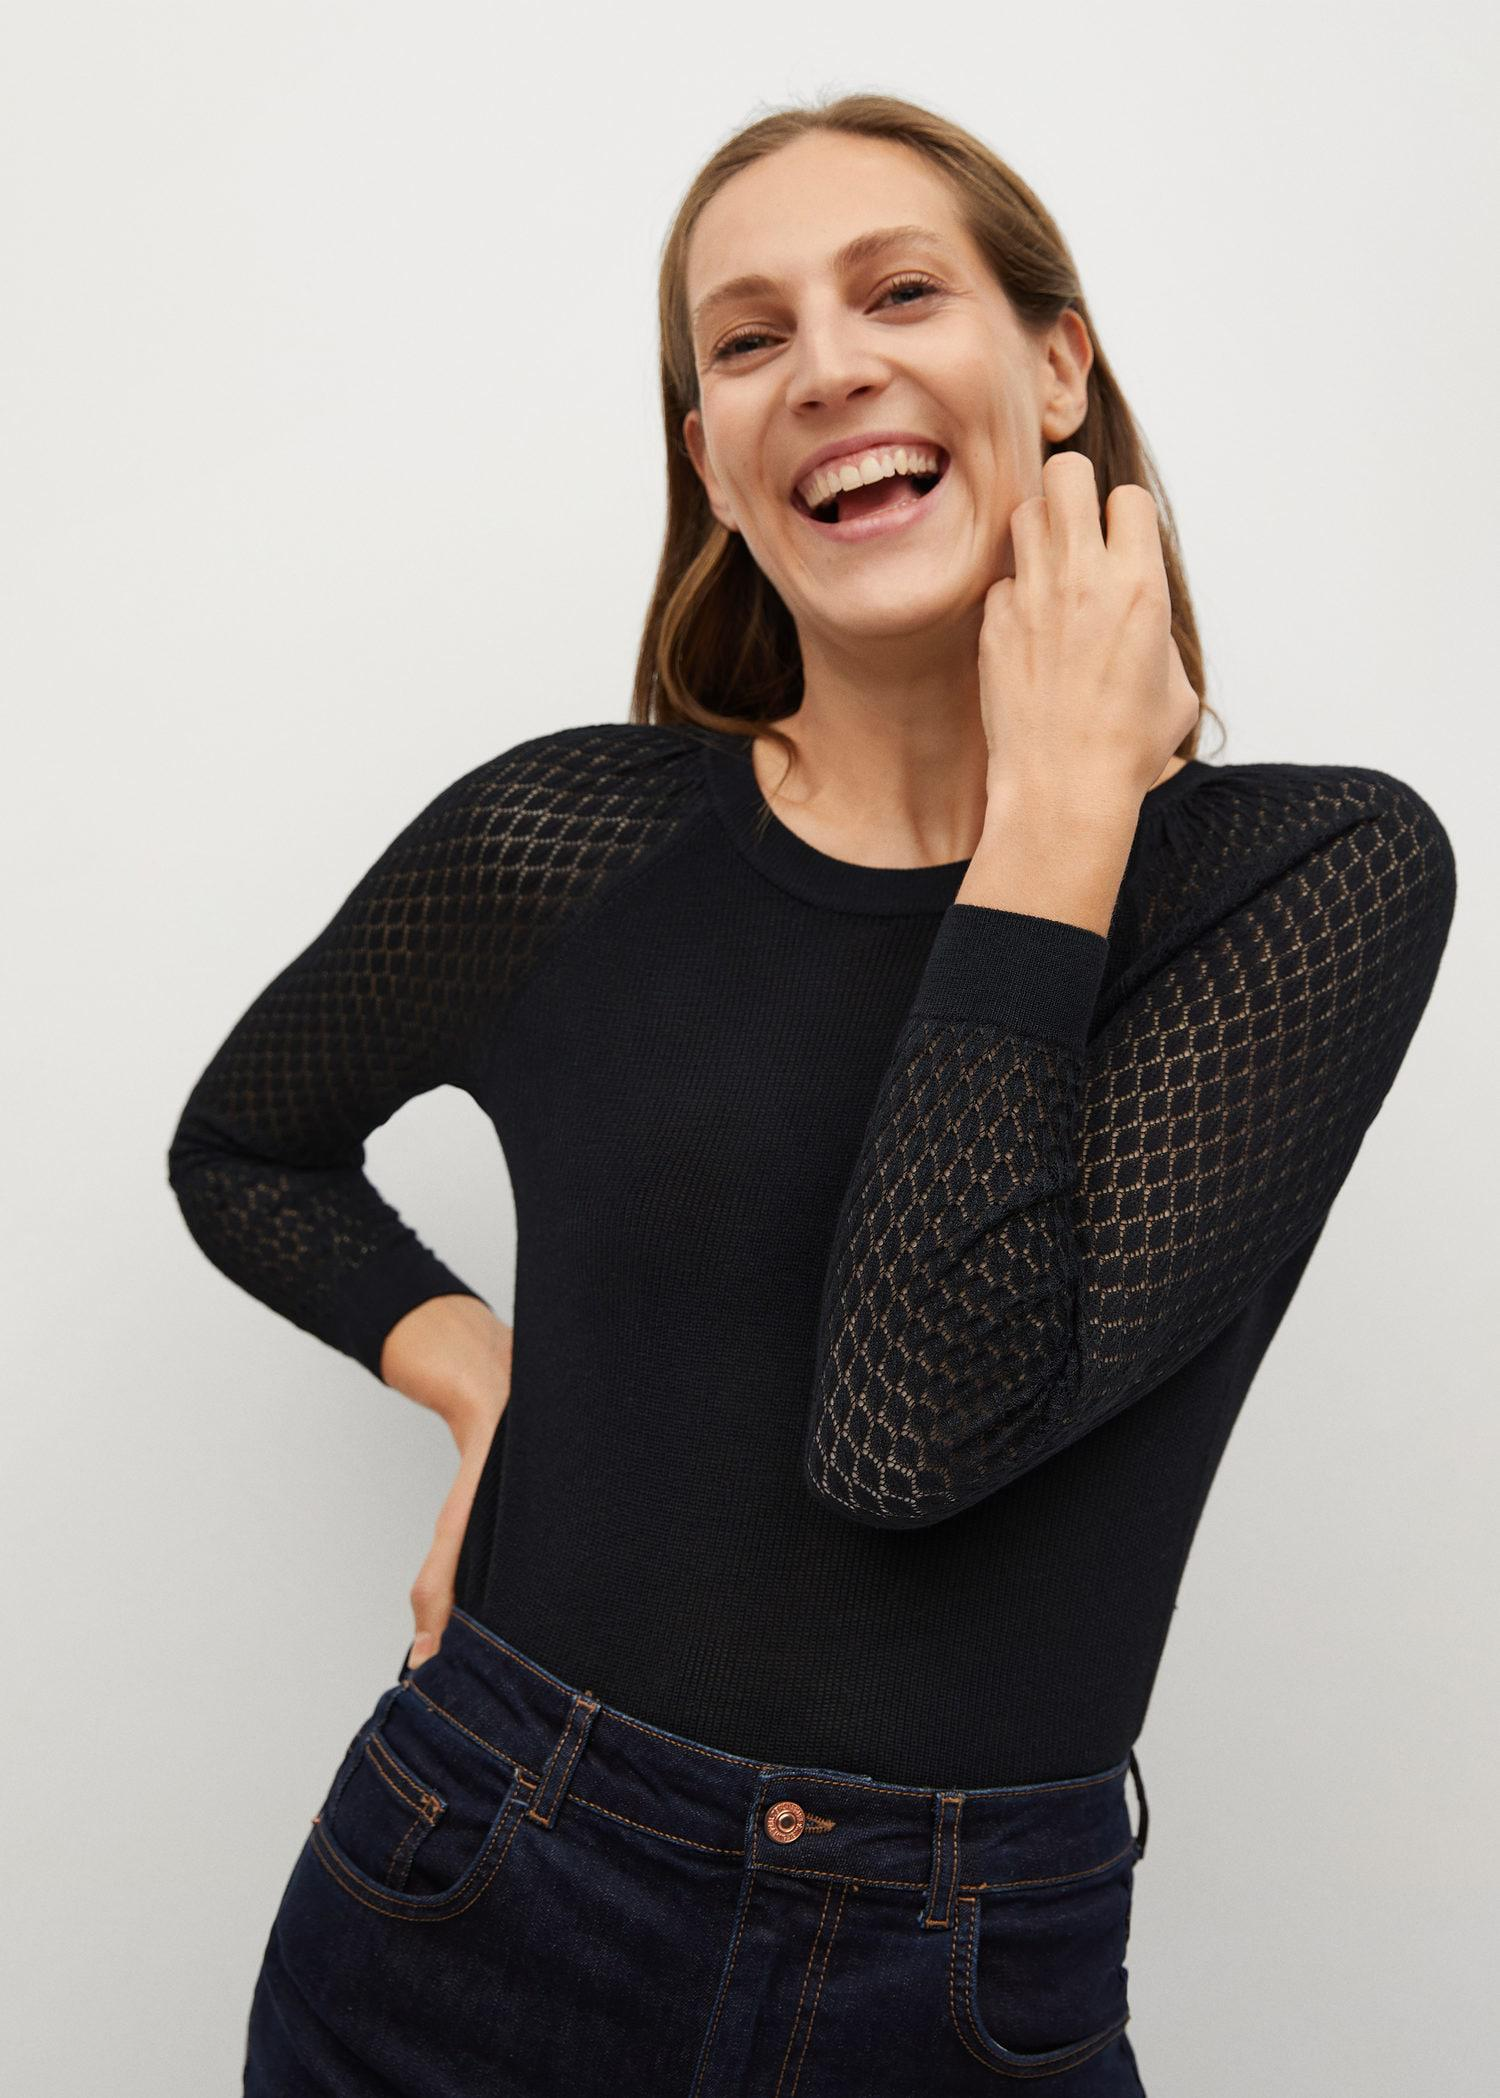 Sleeved sweater with openwork detail